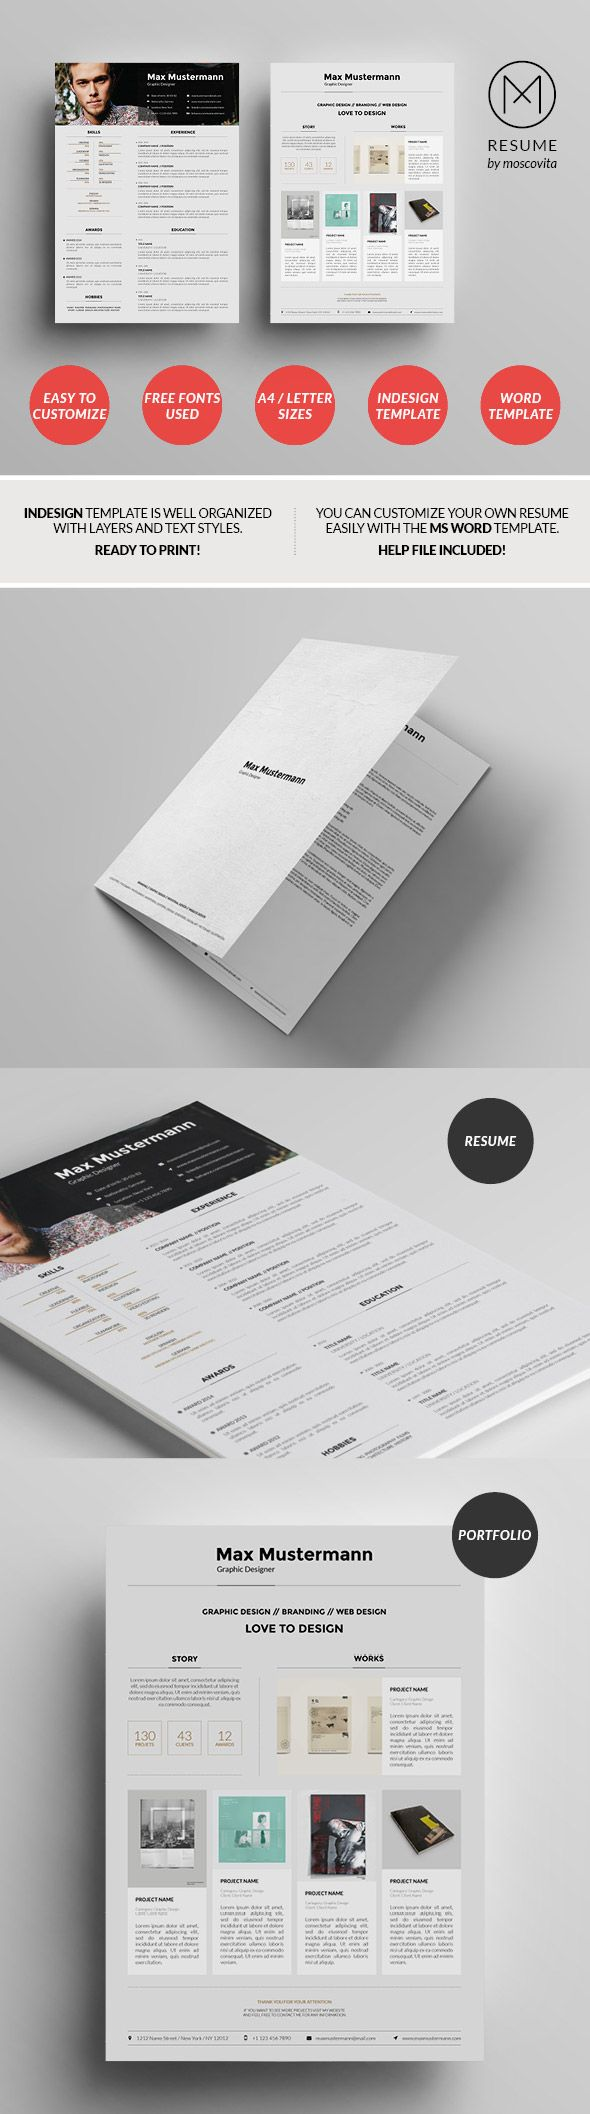 Structured Creative Resume Template Design 12 best